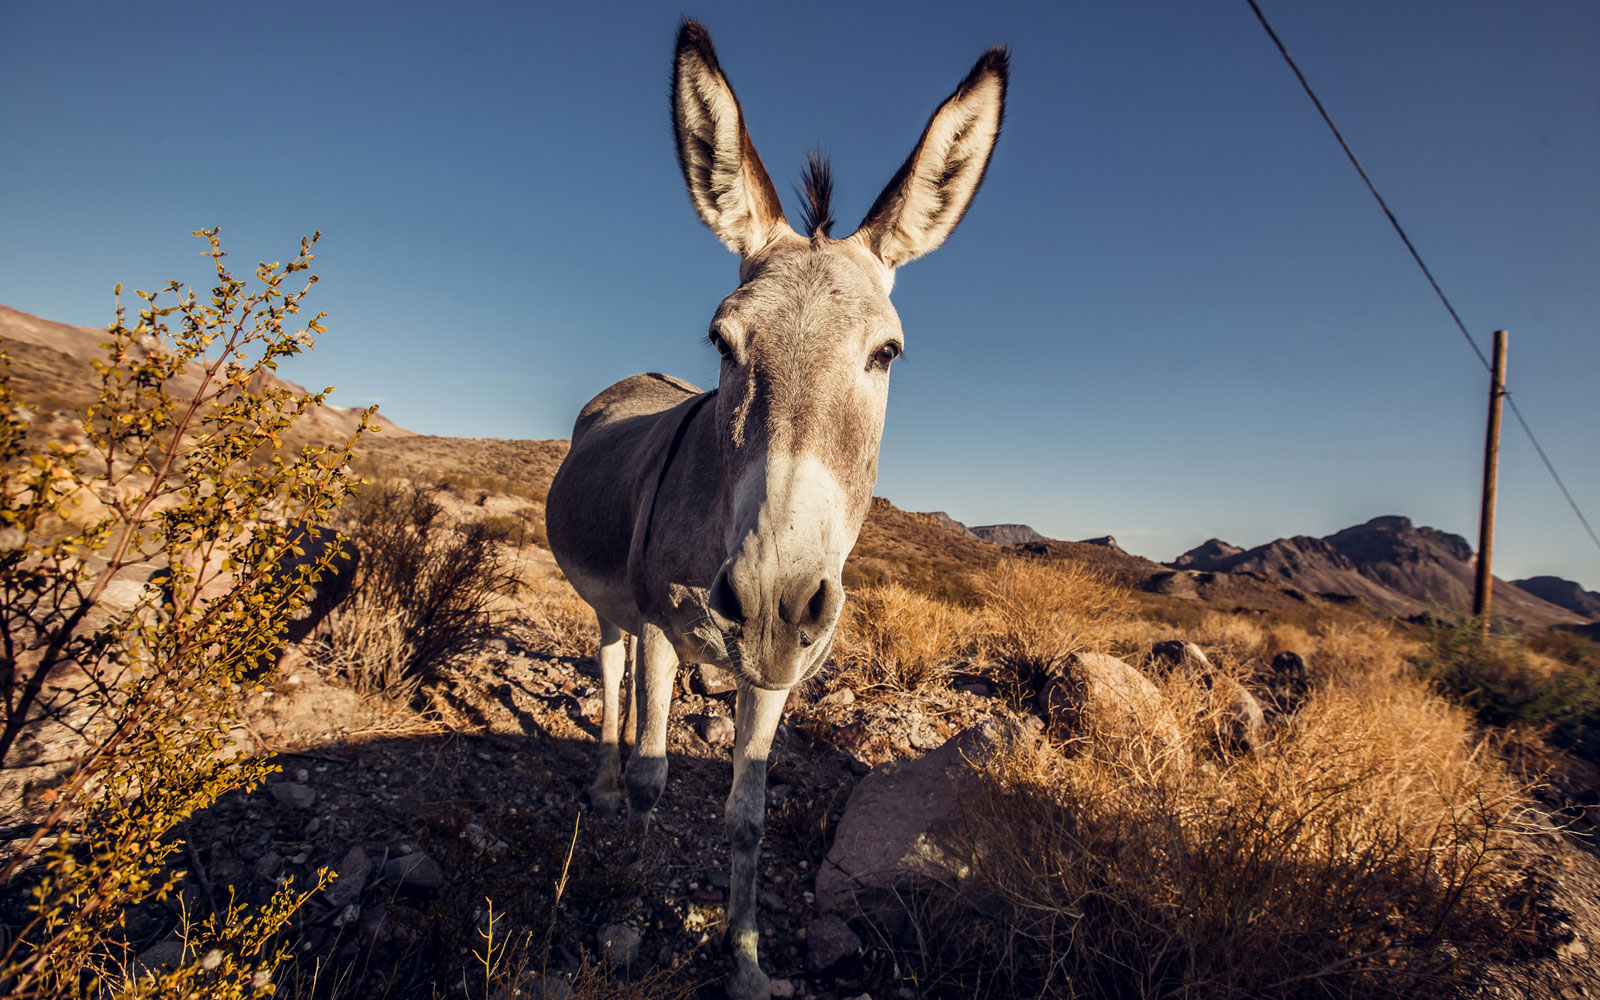 Over 40 Wild Burros Have Been Killed Since May — and California Officials Want Answers